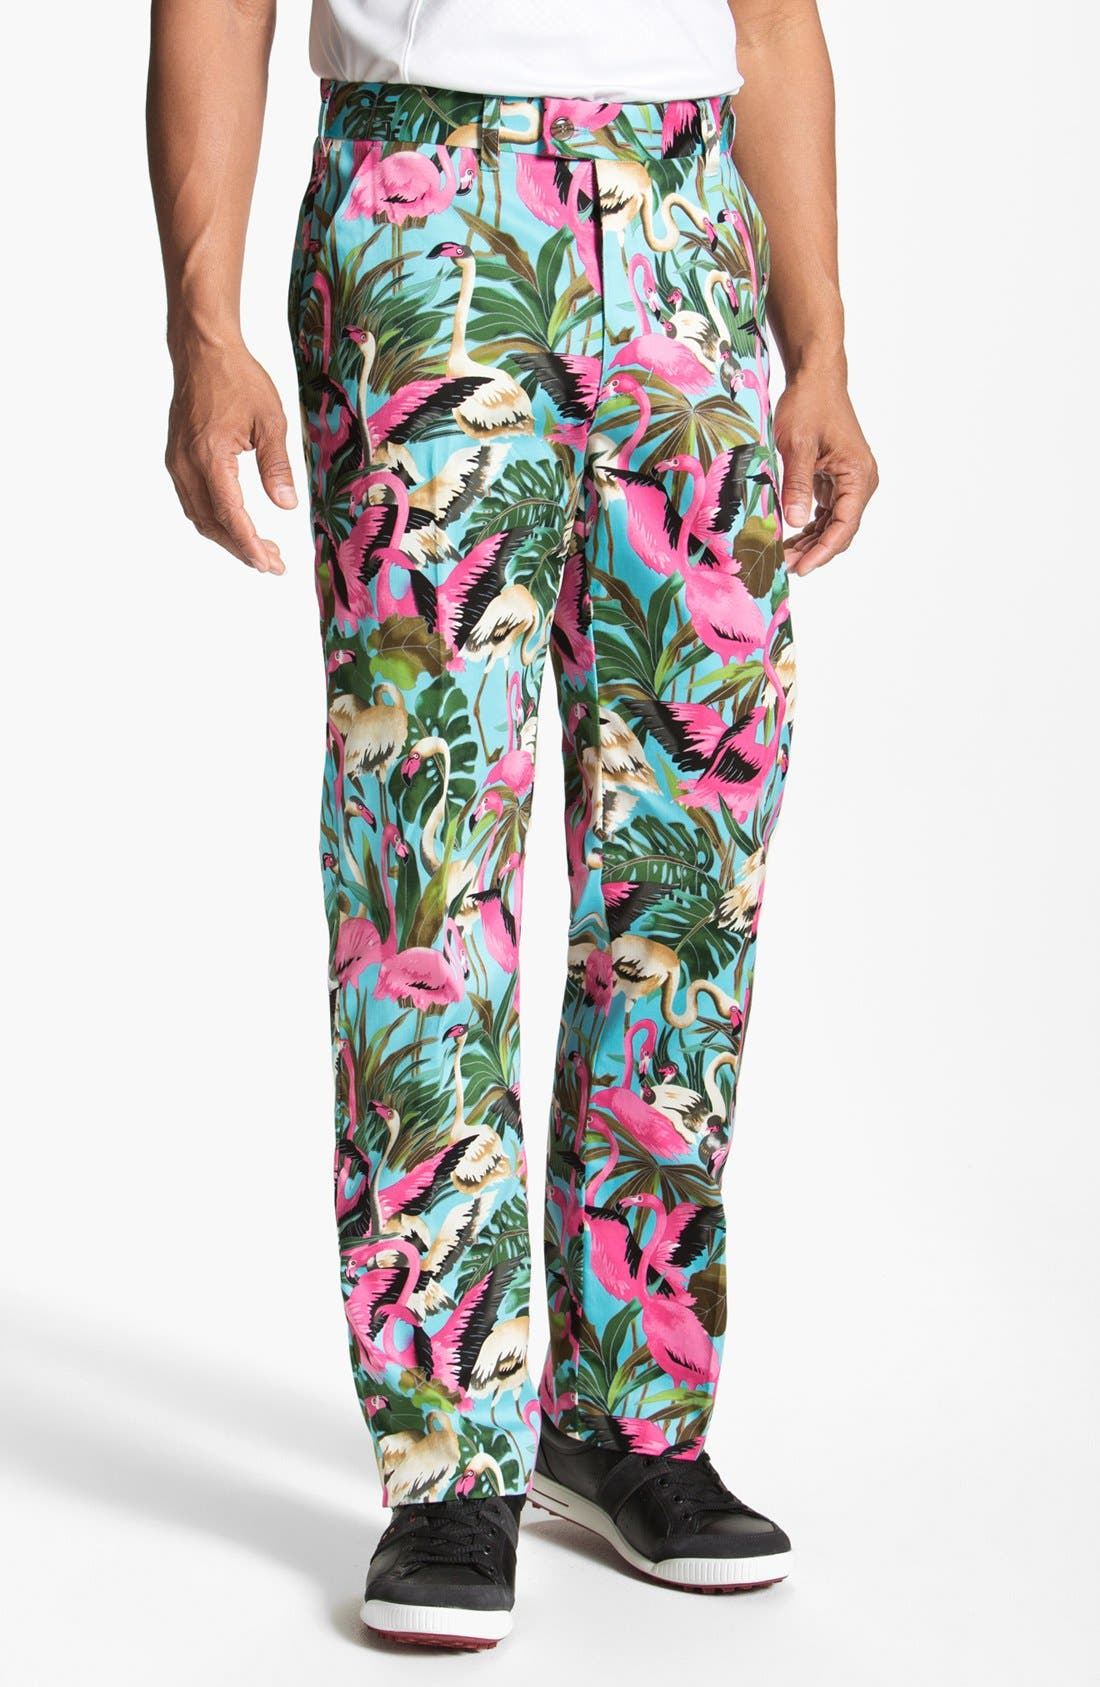 Loudmouth Golf Pink Flamingo Pants Nordstrom